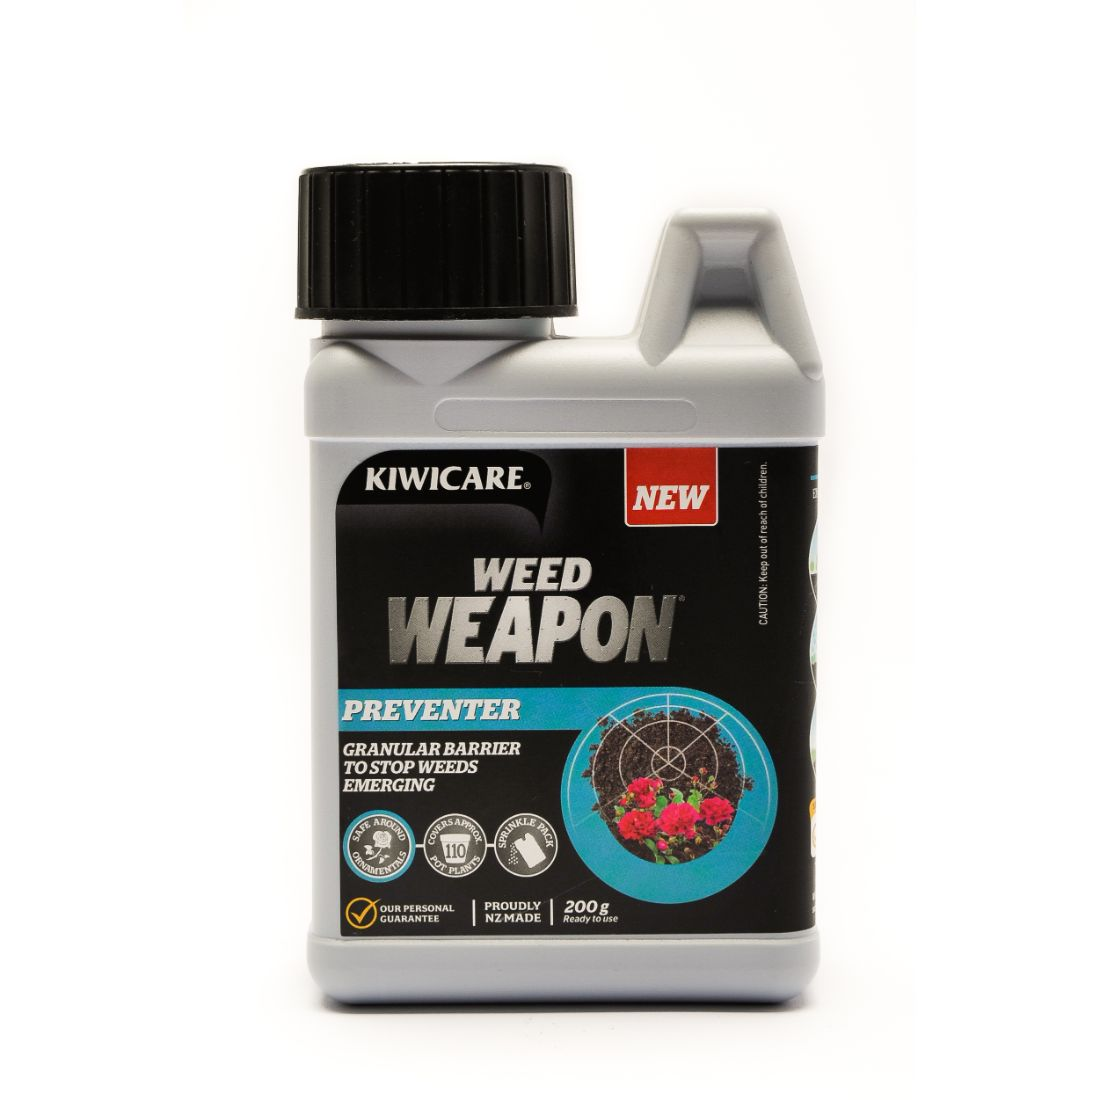 Weed Weapon Preventer Herbicide Shaker Pack 200g